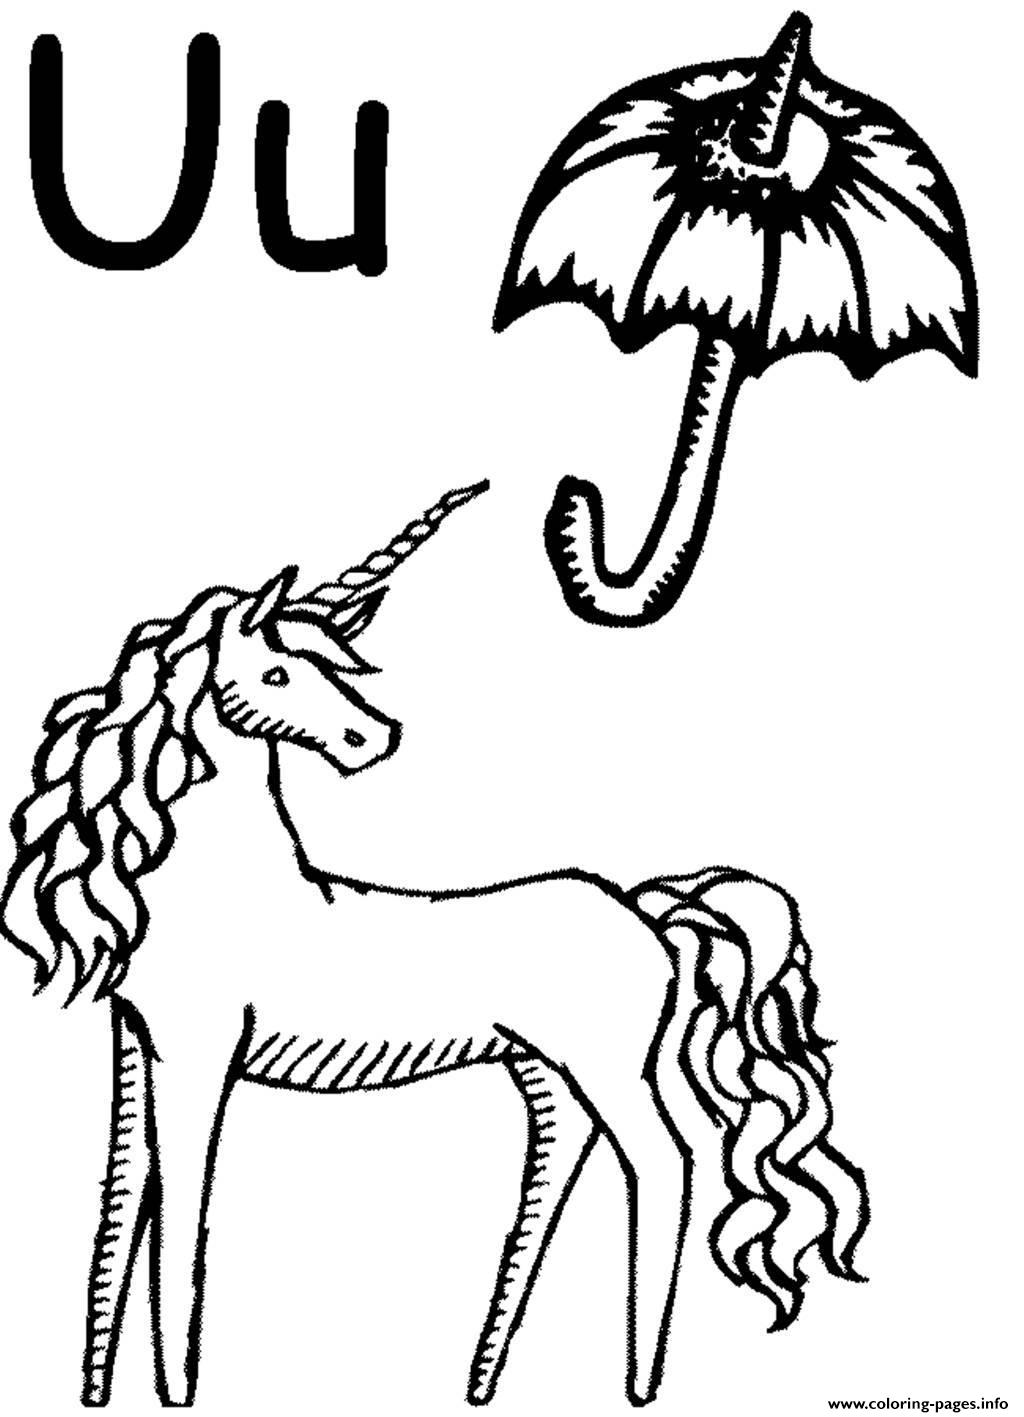 Unicorn And Umbrella Alphabet S Free Coloring Pages